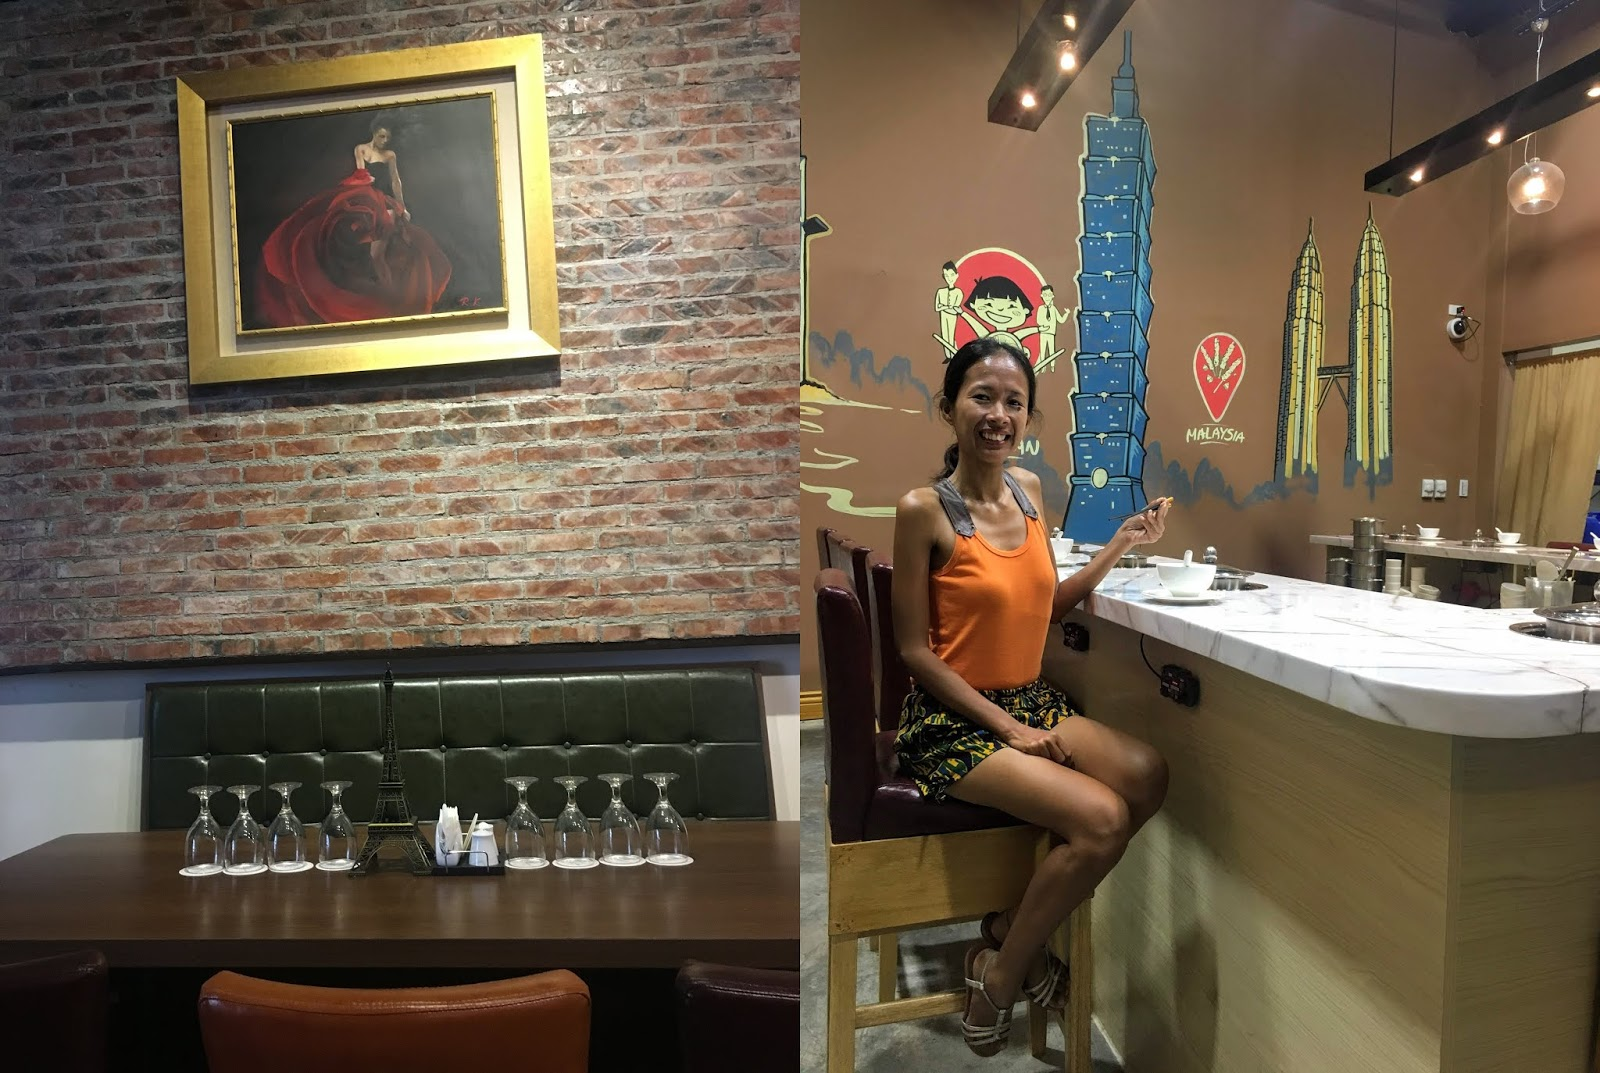 shabu shabu restaurant in subic bay